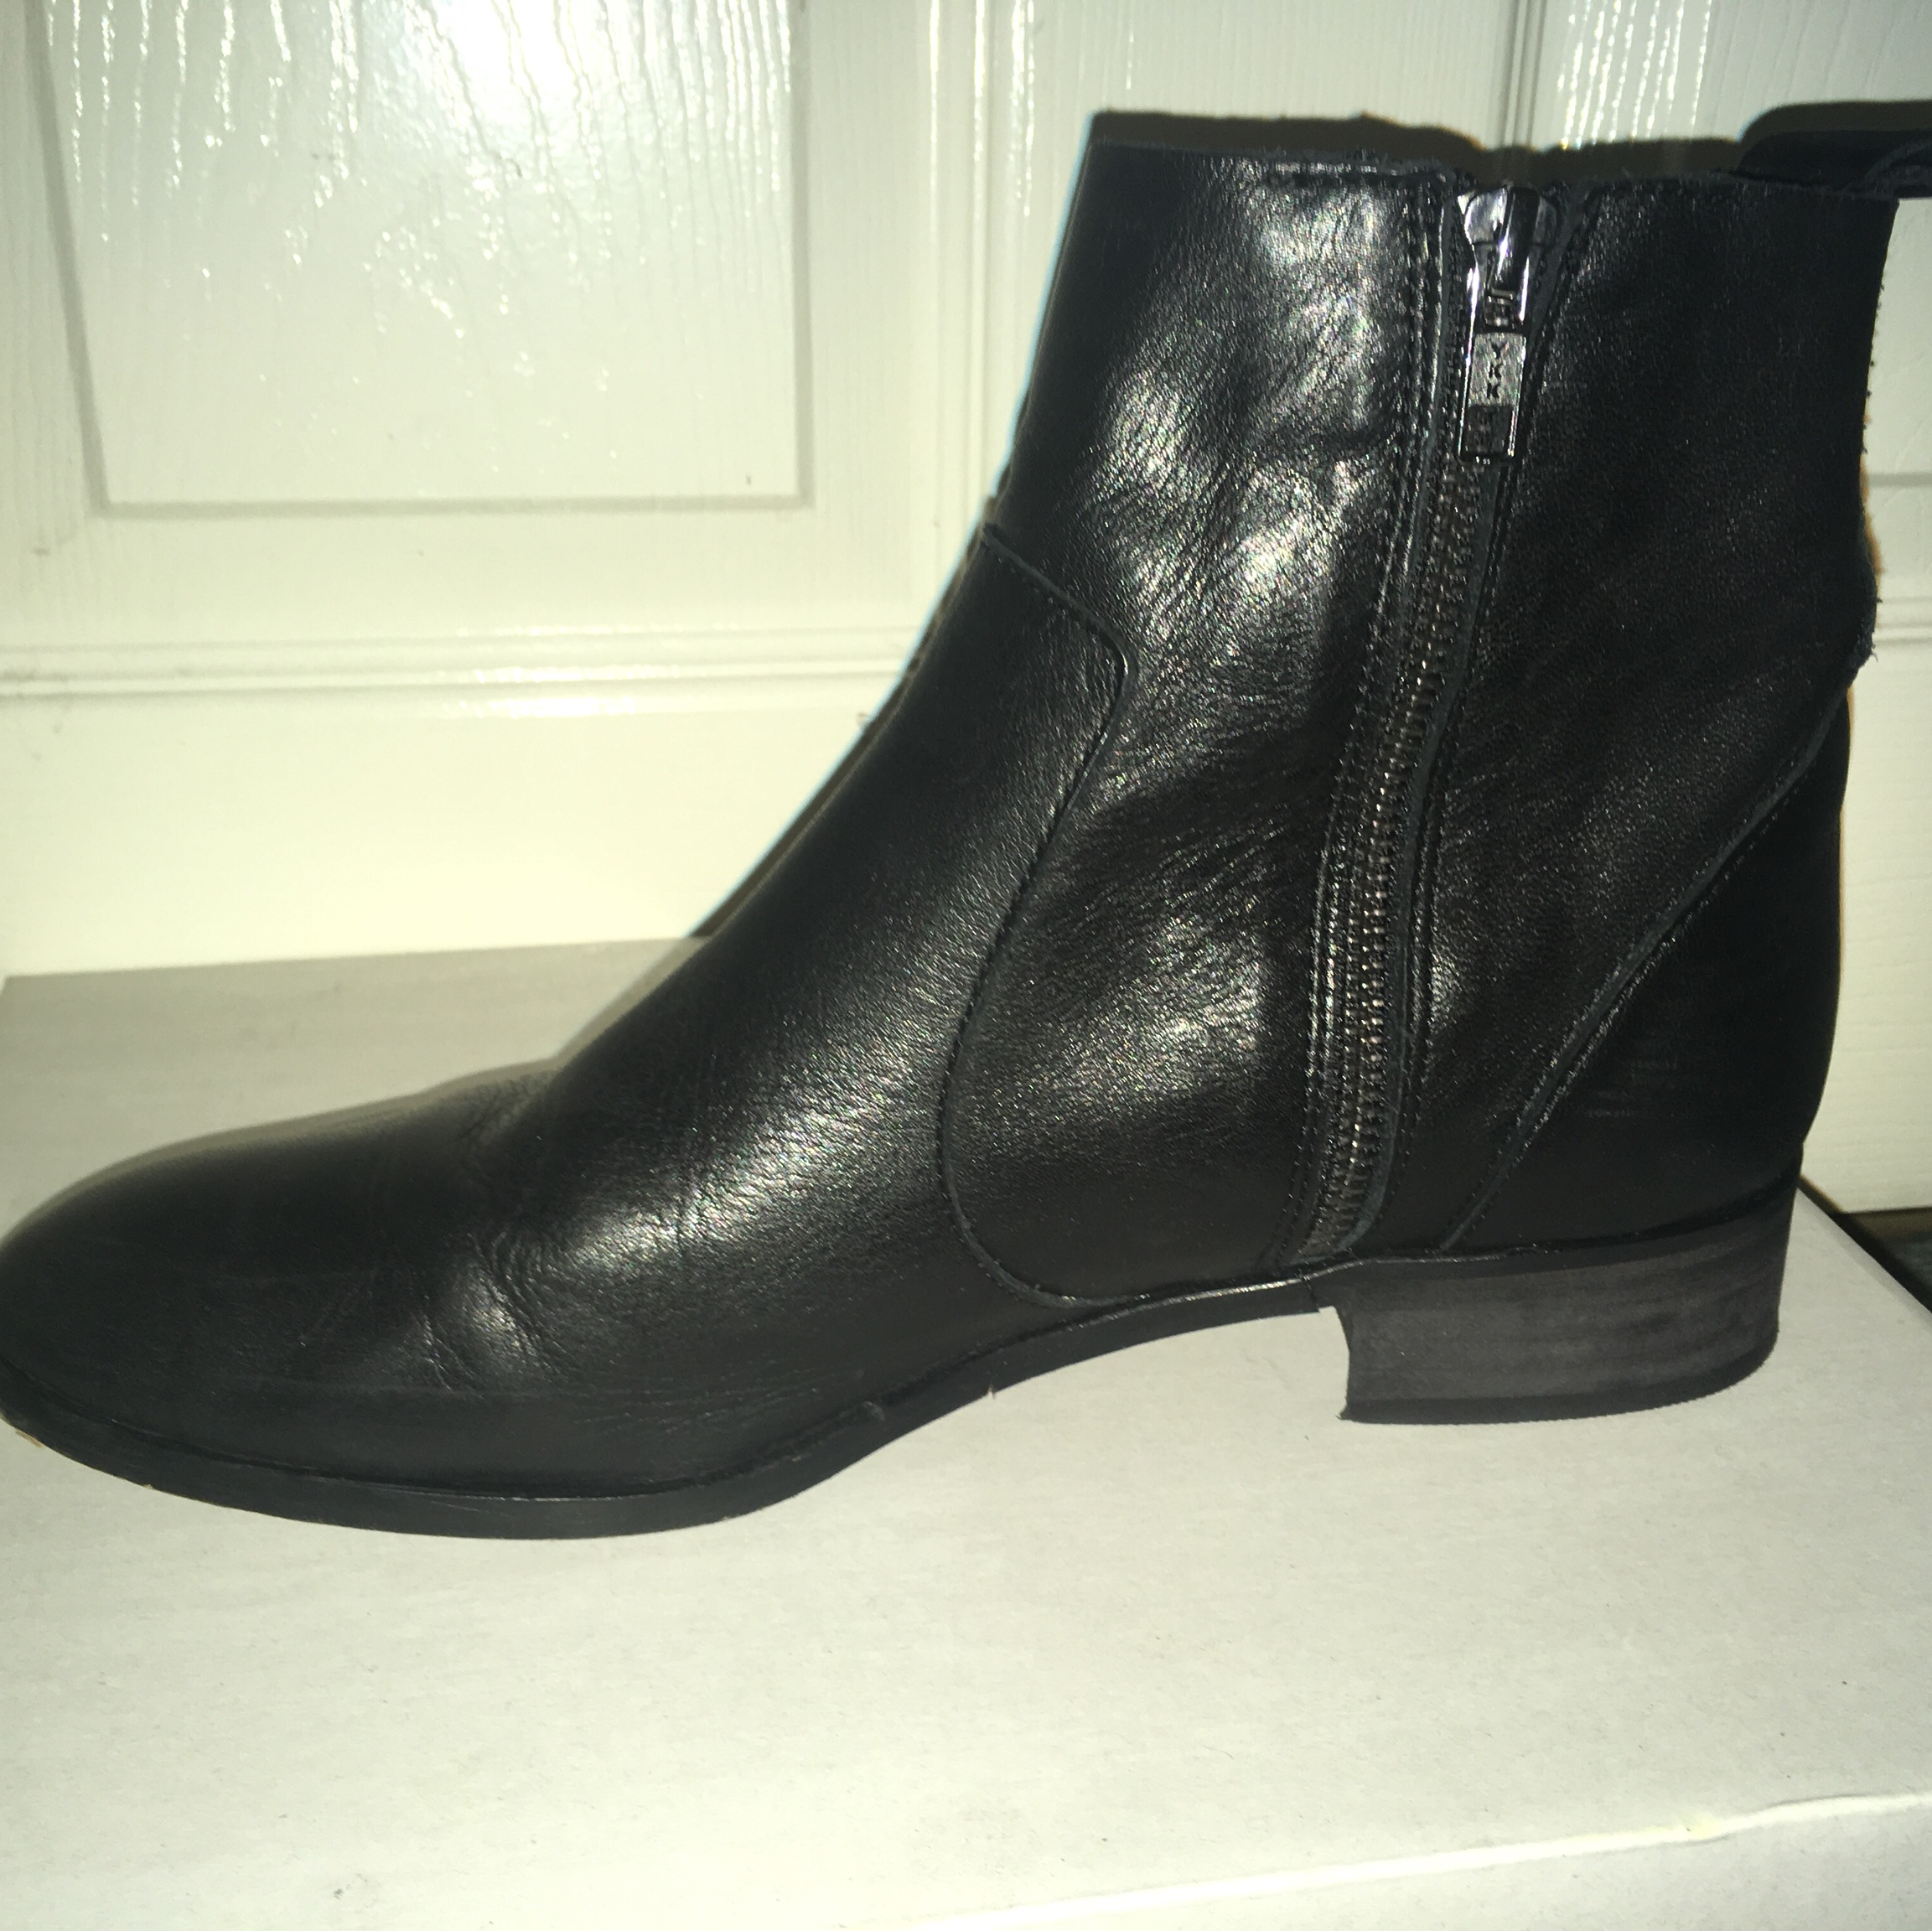 Office Ashleigh flat ankle boots Size